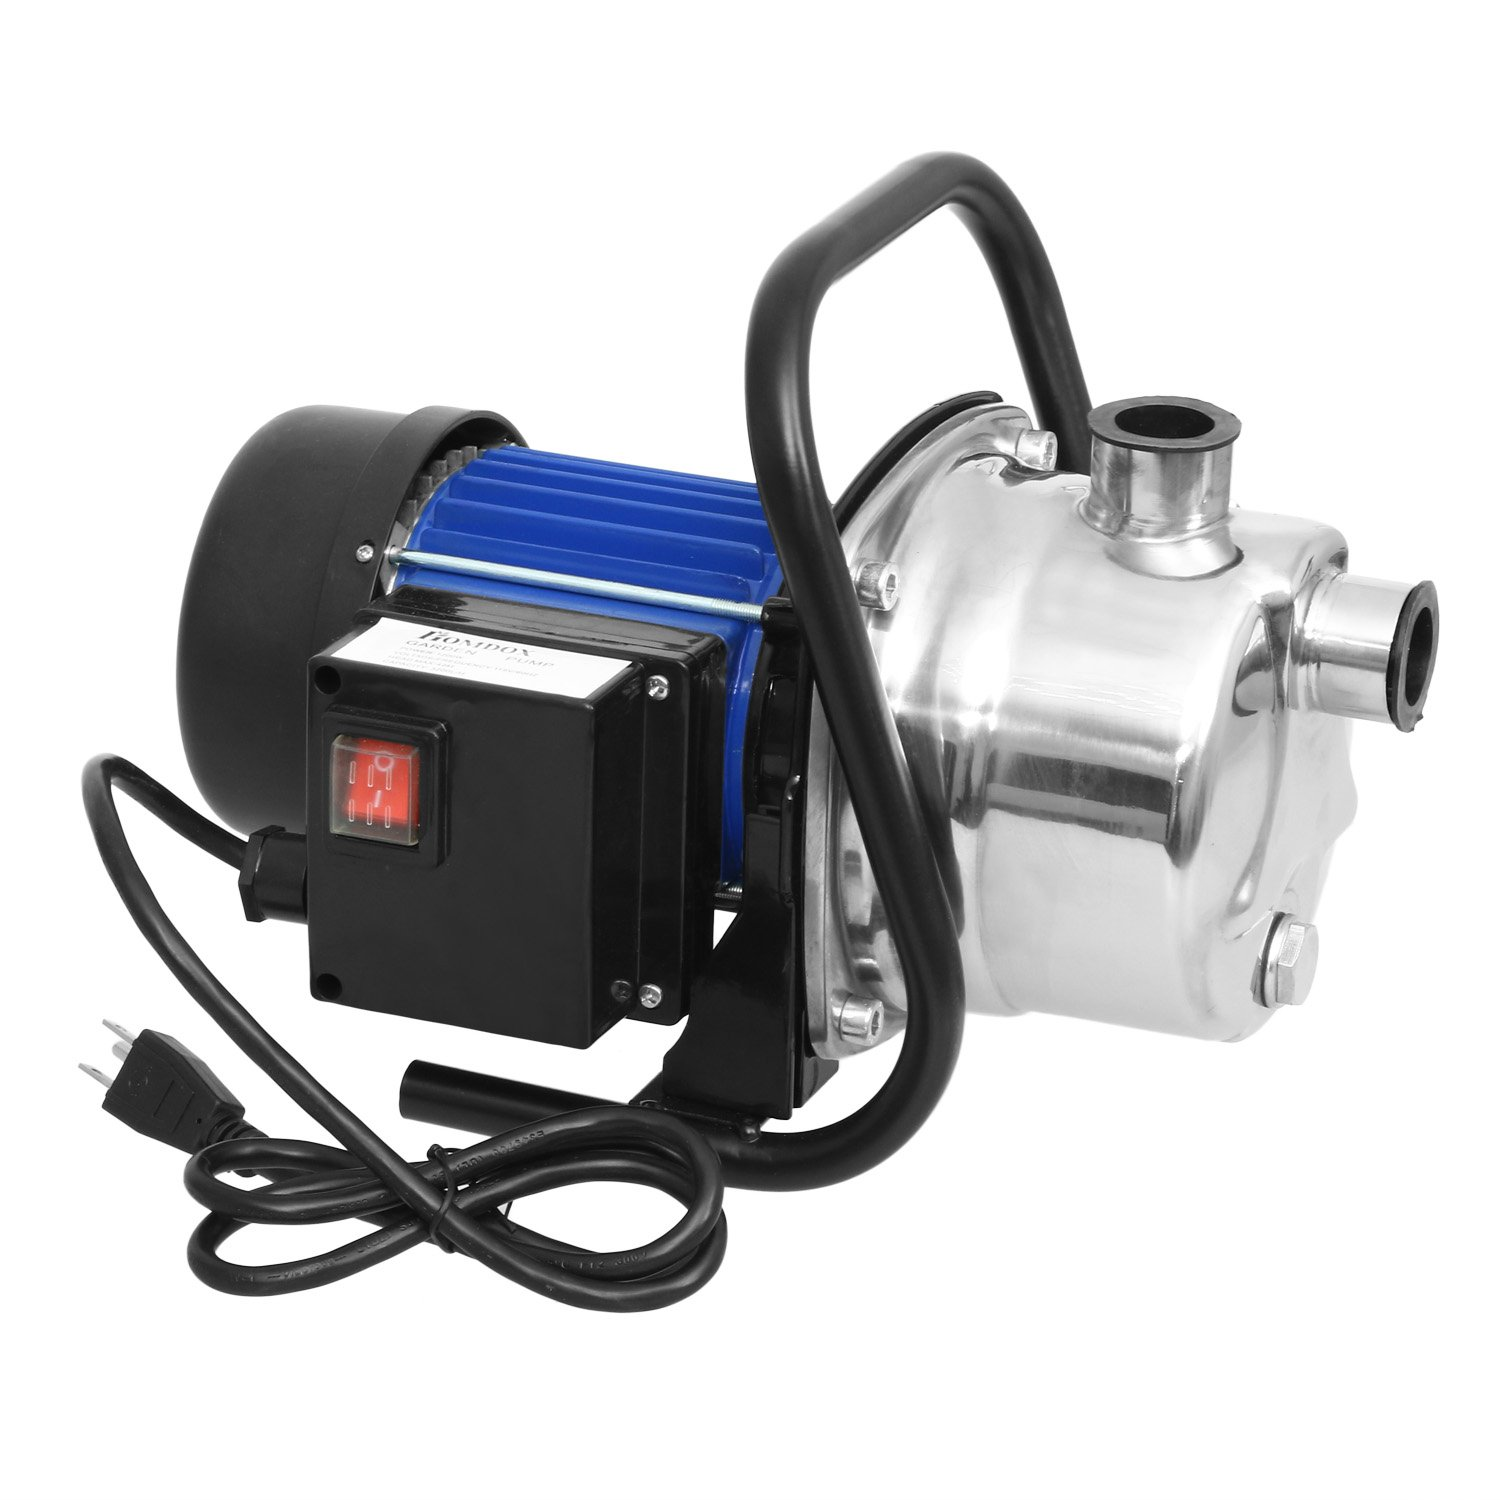 1.6HP Stainless Steel Water Pump Electric Transfer Pump Submersible Sump Pump Shallow Well Pump Home Garden Lawn Sprinkling Booster Pump (US Stock) by Binxin